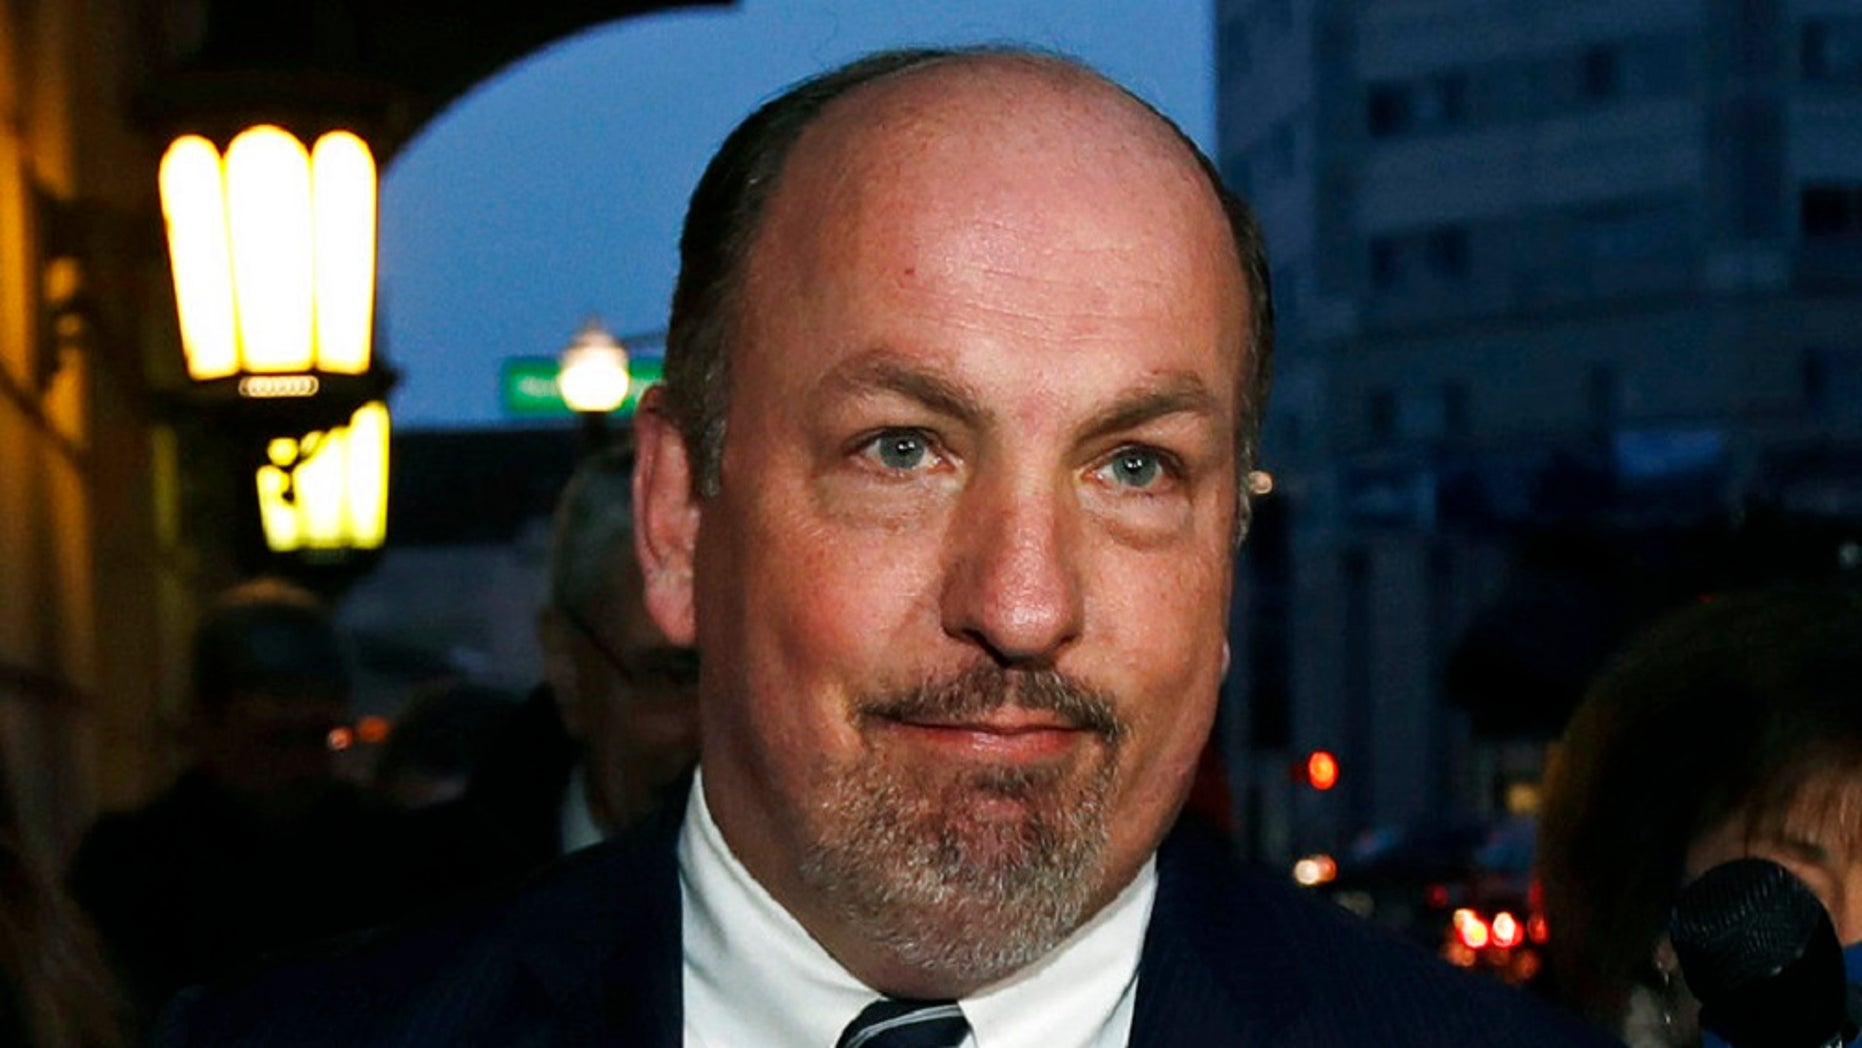 FILE - In this Dec. 8, 2017, file photo, former Massachusetts State Sen. Brian Joyce leaves the U.S. federal courthouse in Worcester, Mass. Joyce, was awaiting trial on federal corruption charges, was found dead in his Westport, Mass. home on Thursday, Sept. 27, 2018. (AP Photo/Charles Krupa, File)